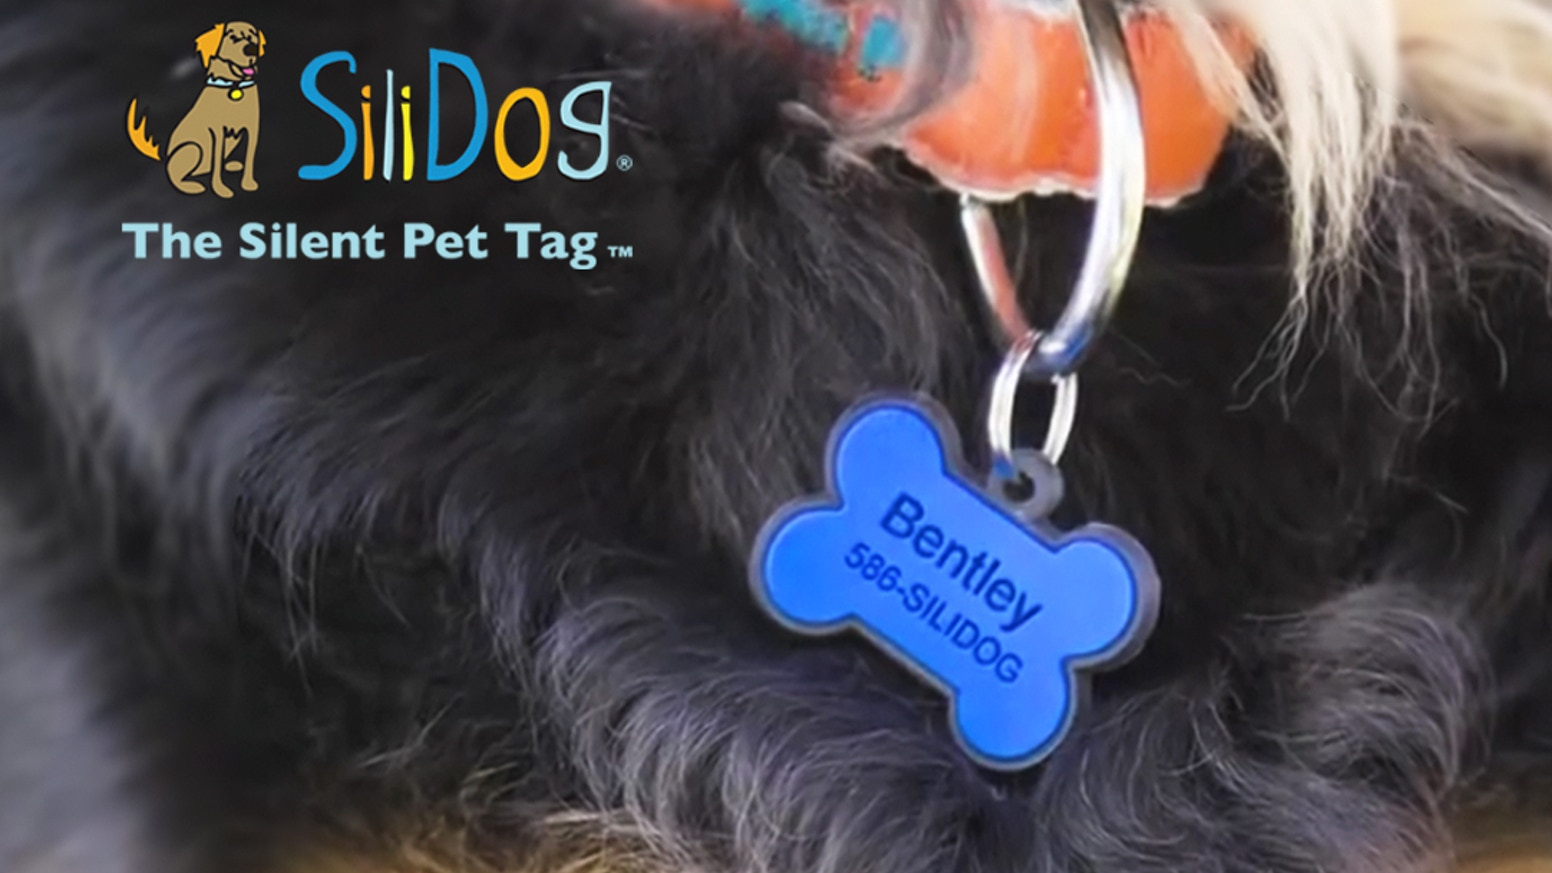 The World's Best Dog Tags - Pet ID tags that won't jingle or fade, and now glow-in-the-dark! Customize yours now! #ShareTheSili